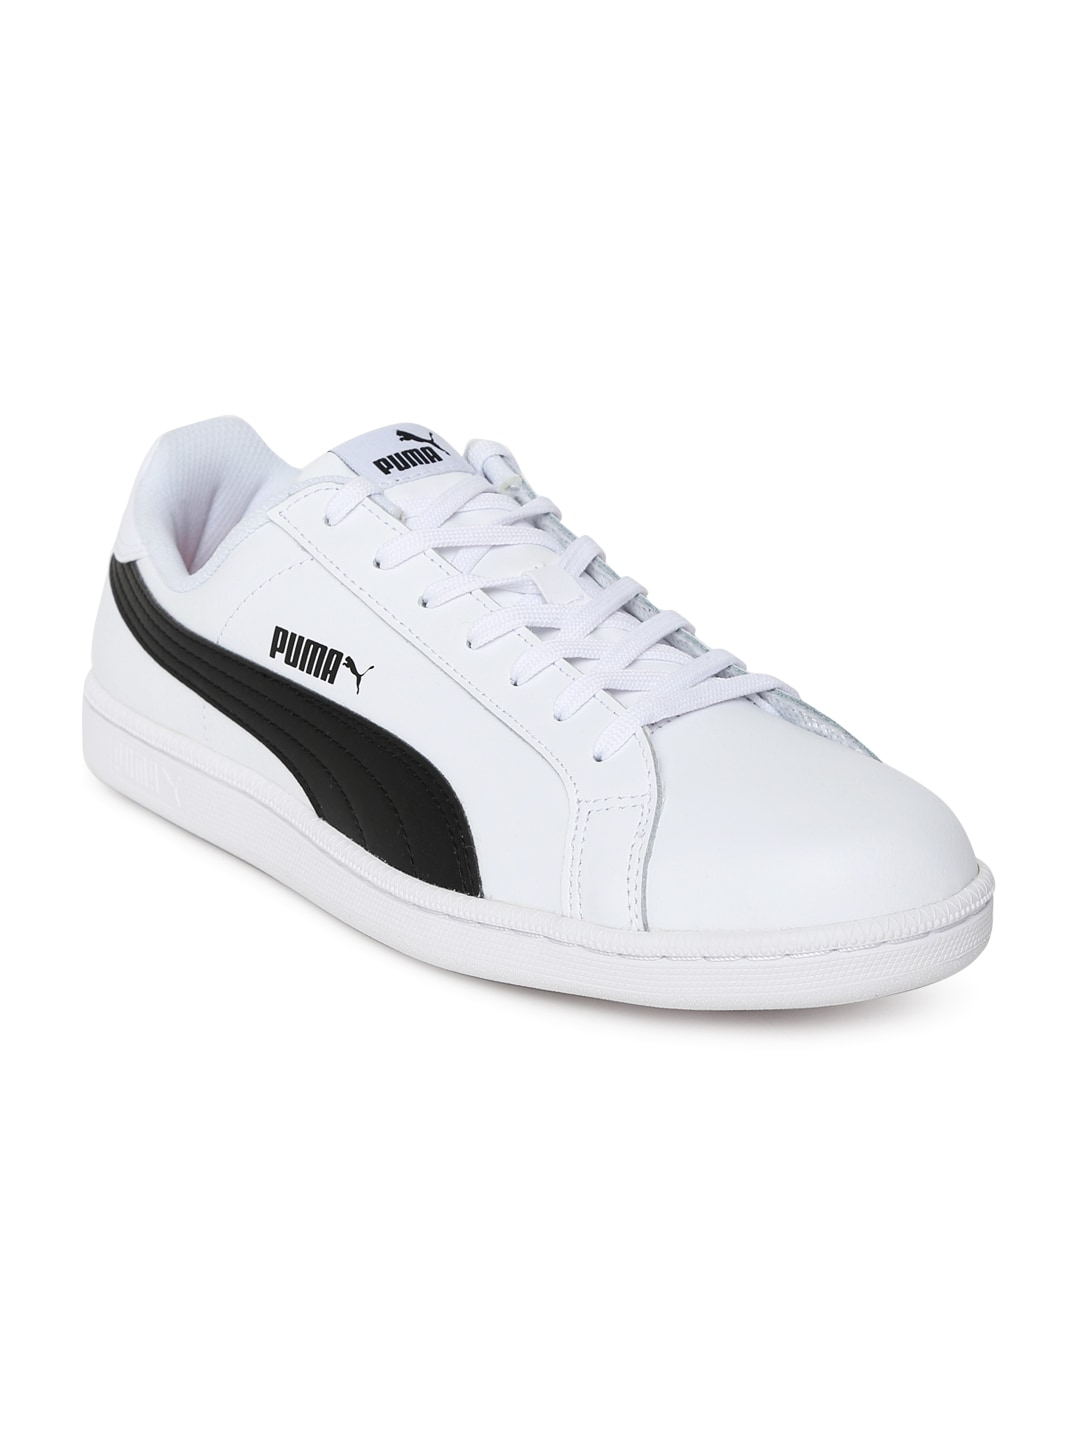 18aa8625eae5f7 Puma Smash White Sneakers for Men online in India at Best price on ...